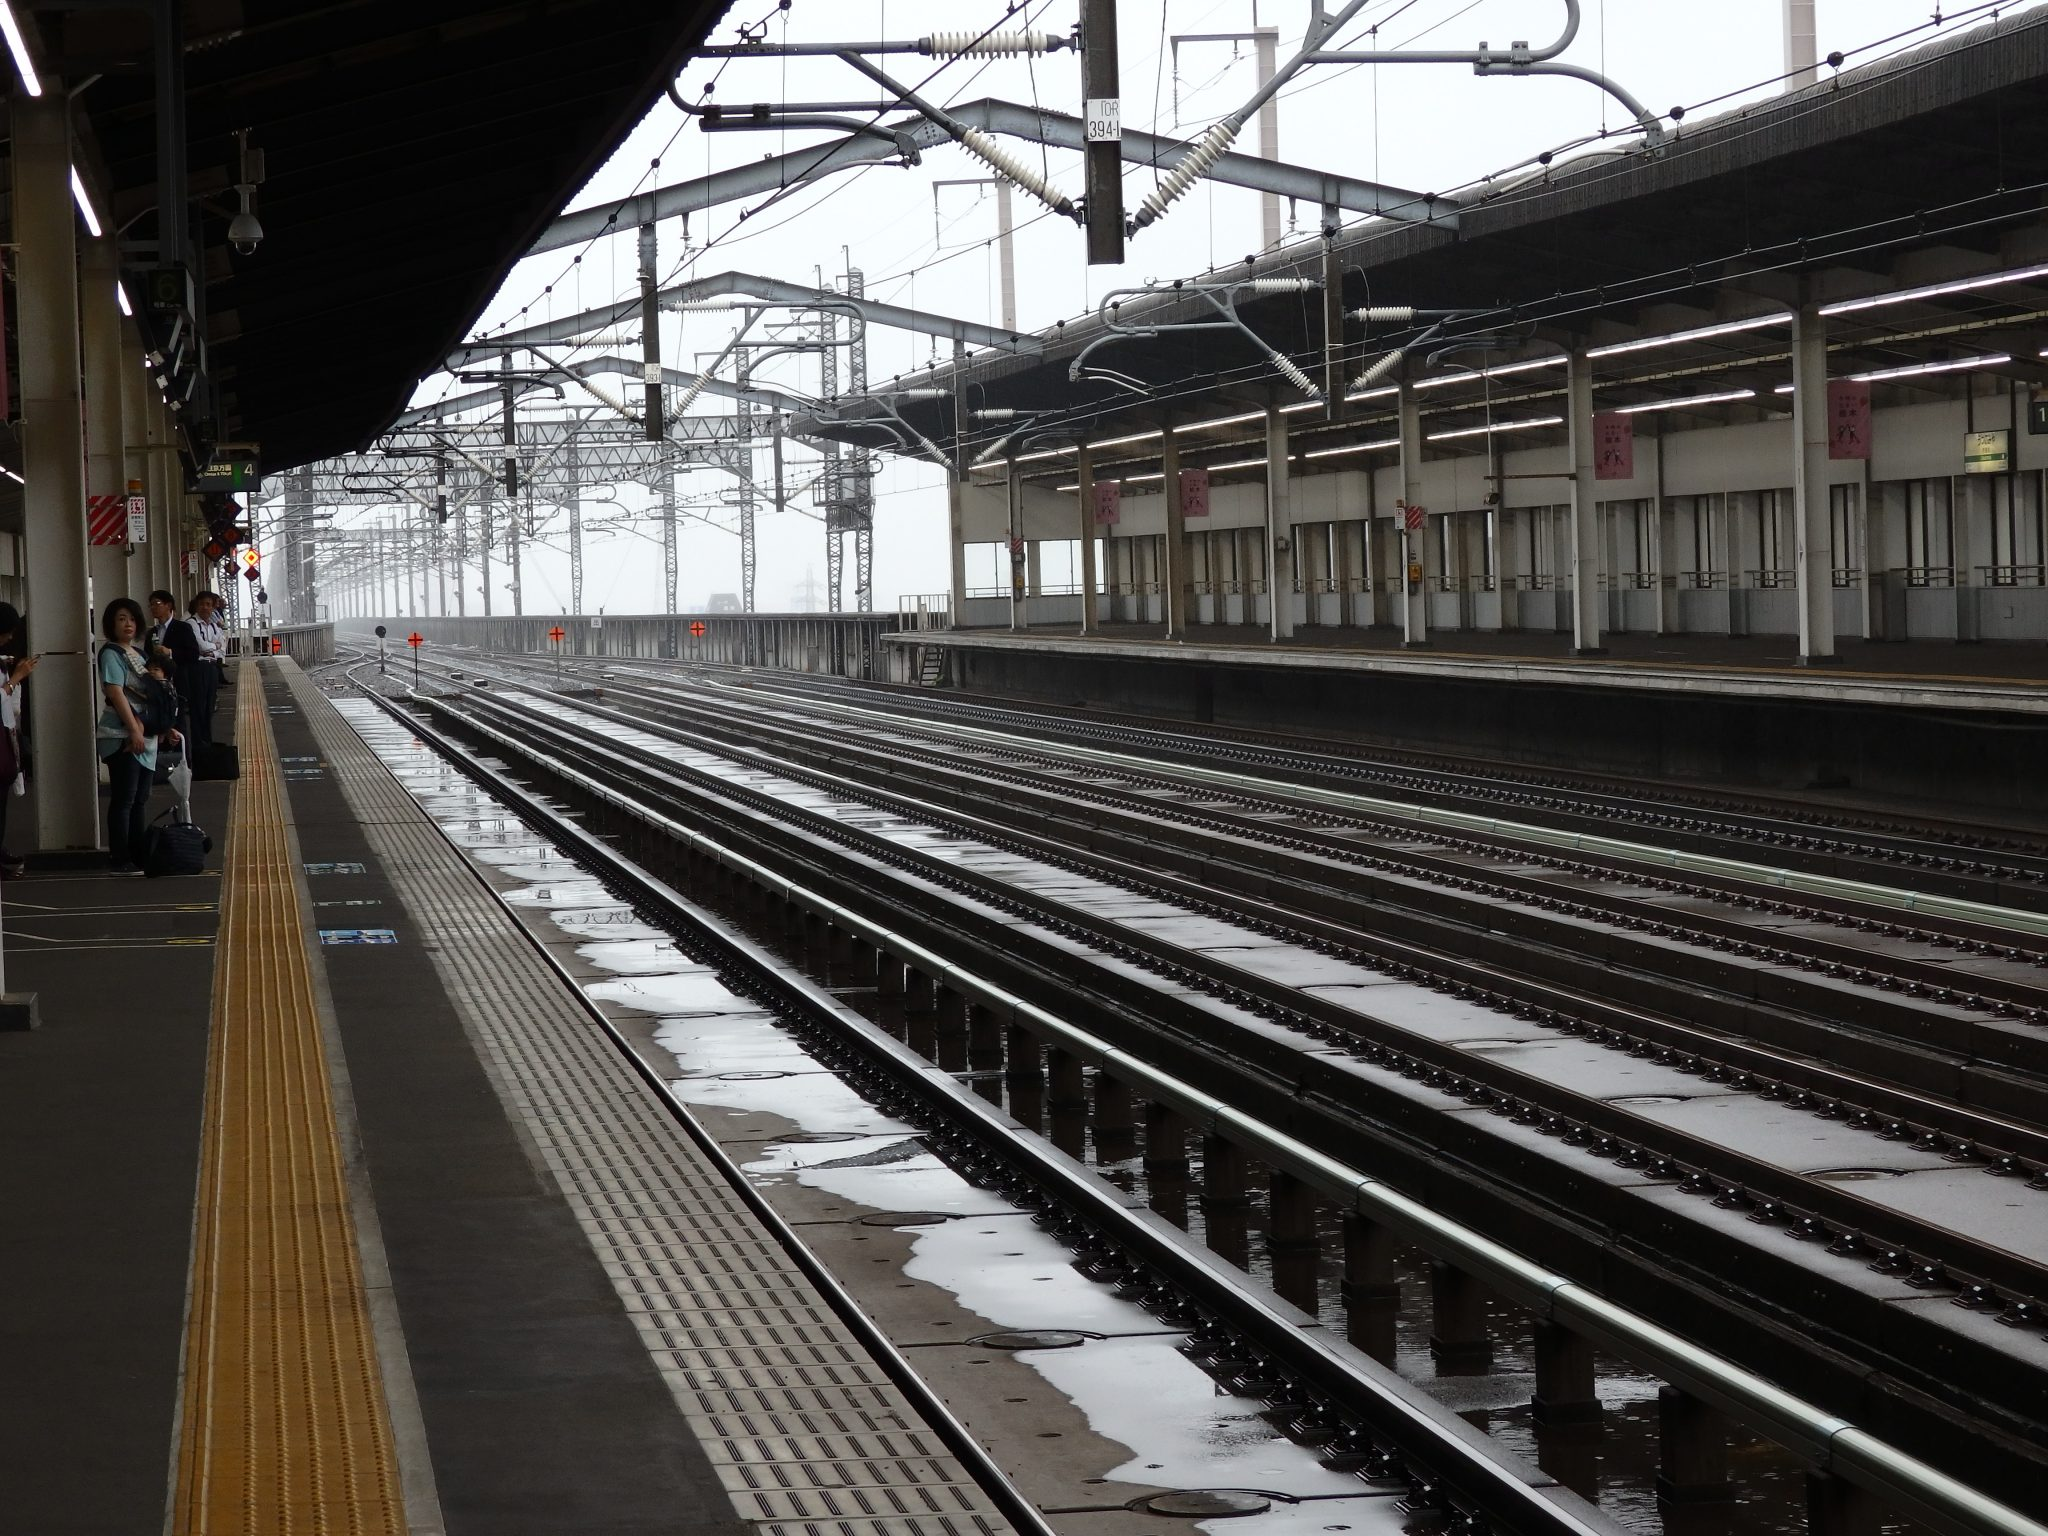 view of Japan Rail train tracks: what's your destination?